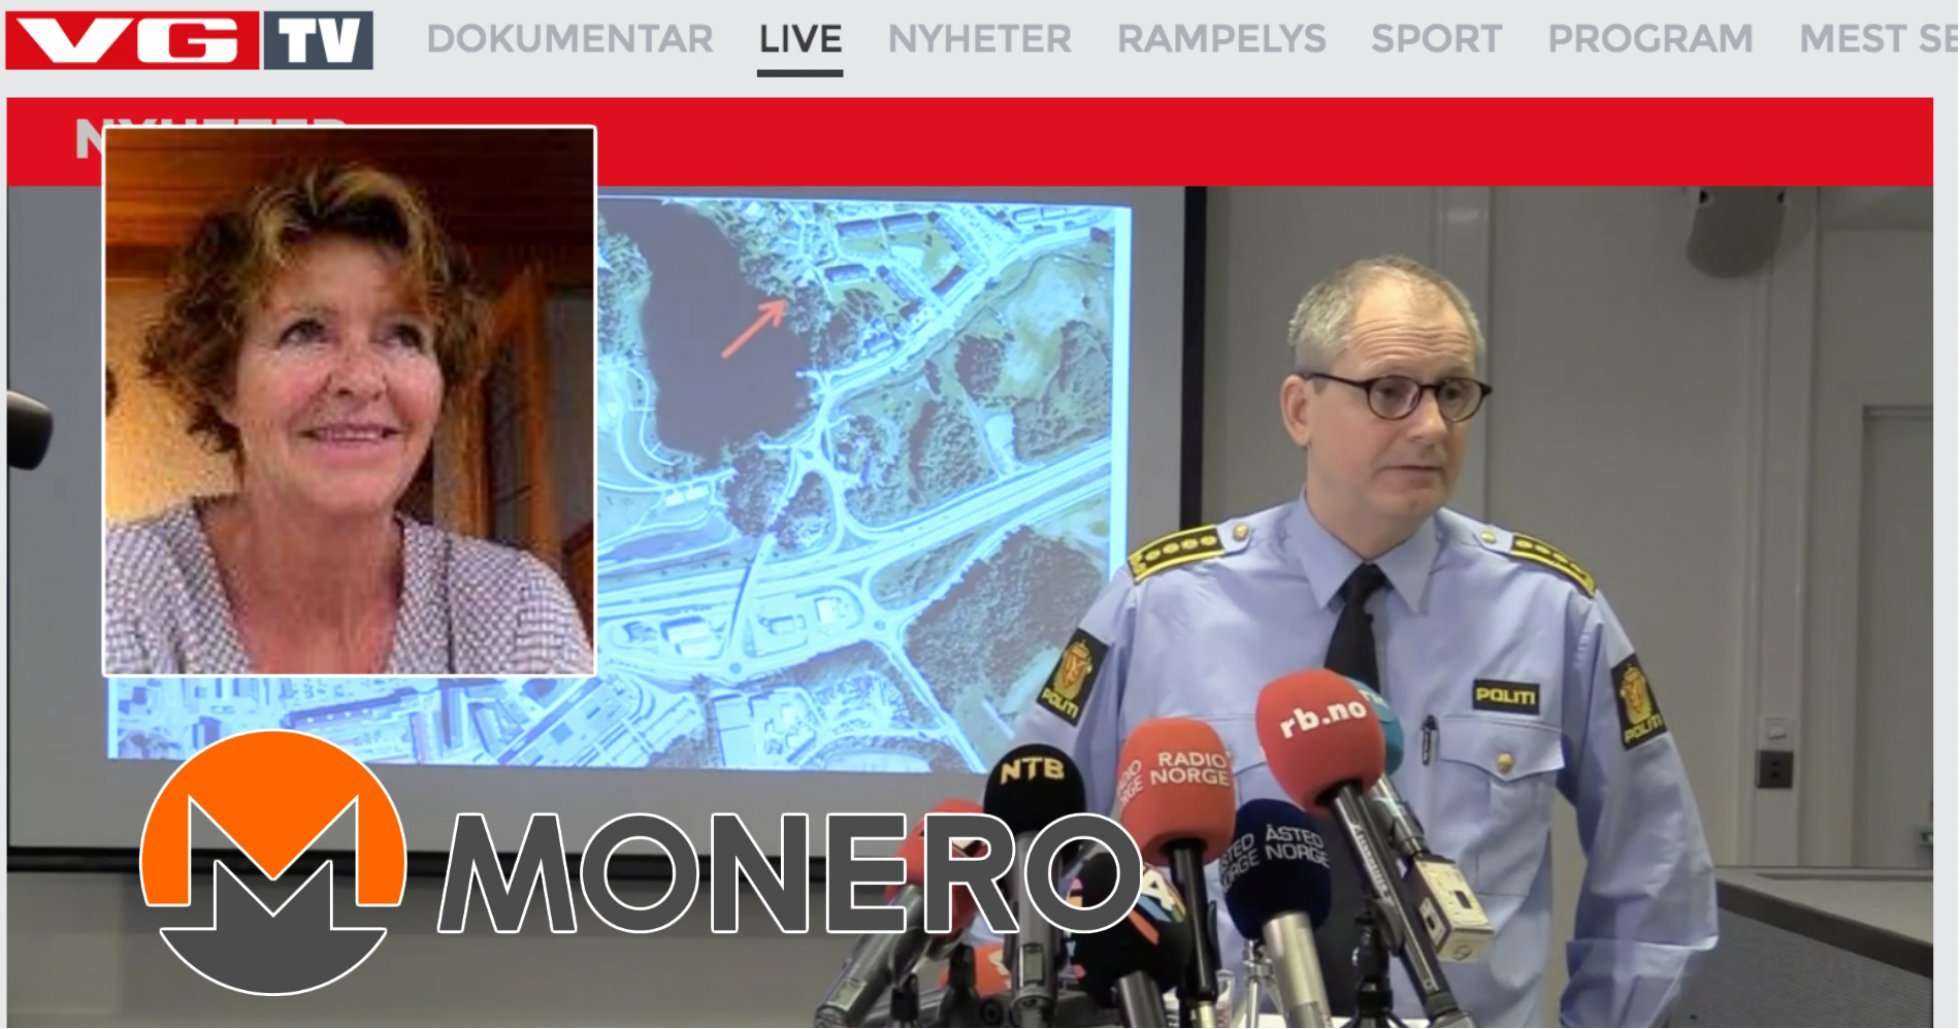 Norwegian police confirm: Communication with the kidnappers is managed through cryptocurrency.